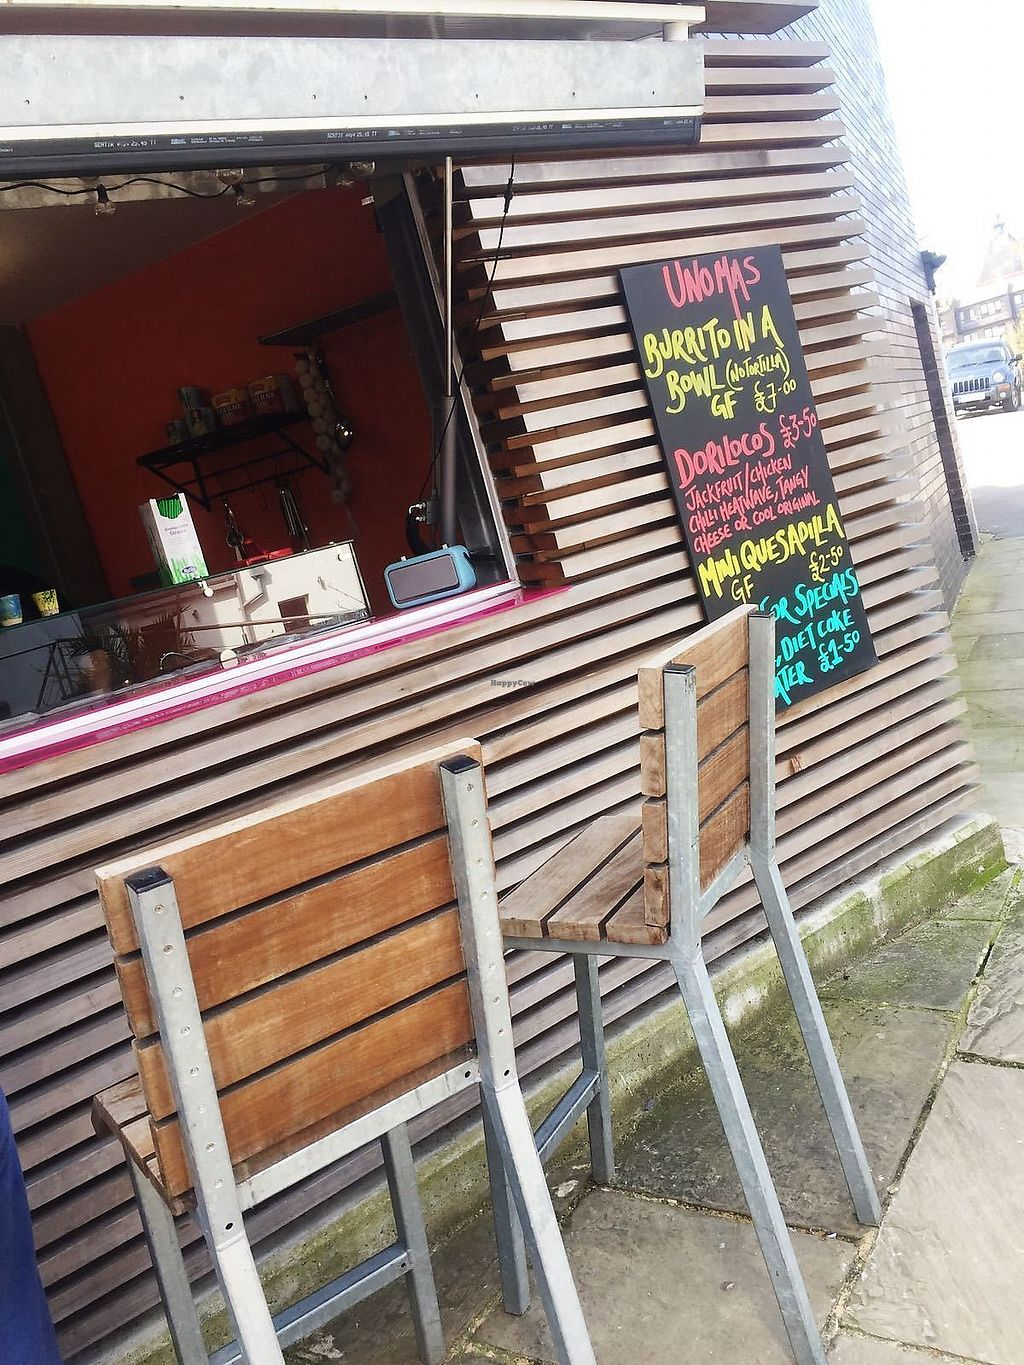 """Photo of Uno Mas  by <a href=""""/members/profile/TARAMCDONALD"""">TARAMCDONALD</a> <br/>Restaurant stand, limited seating at the bar but great street food <br/> April 14, 2018  - <a href='/contact/abuse/image/102539/385732'>Report</a>"""